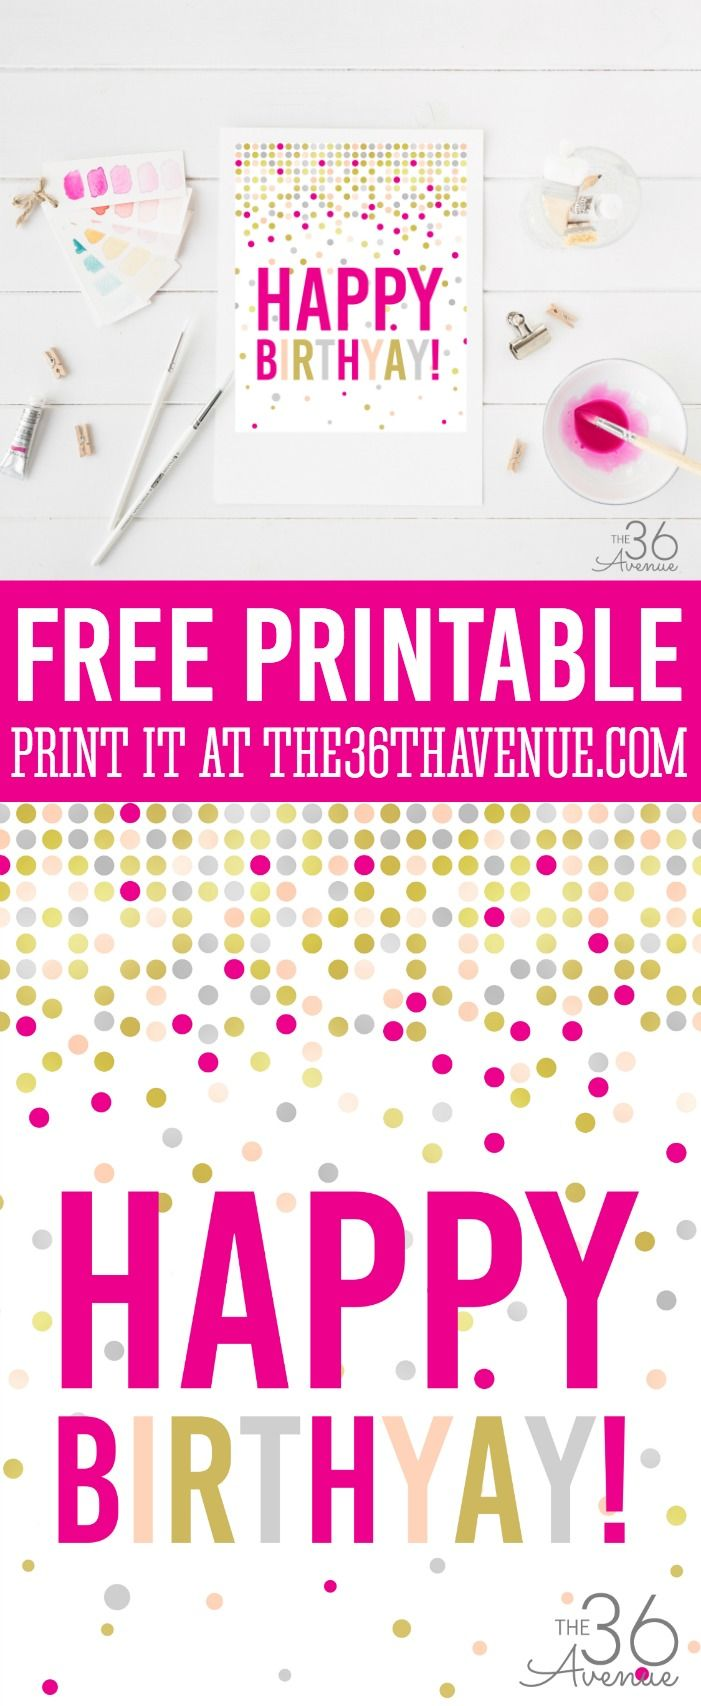 Birthday Printable | Birthdays, Wrapping ideas and Free printables